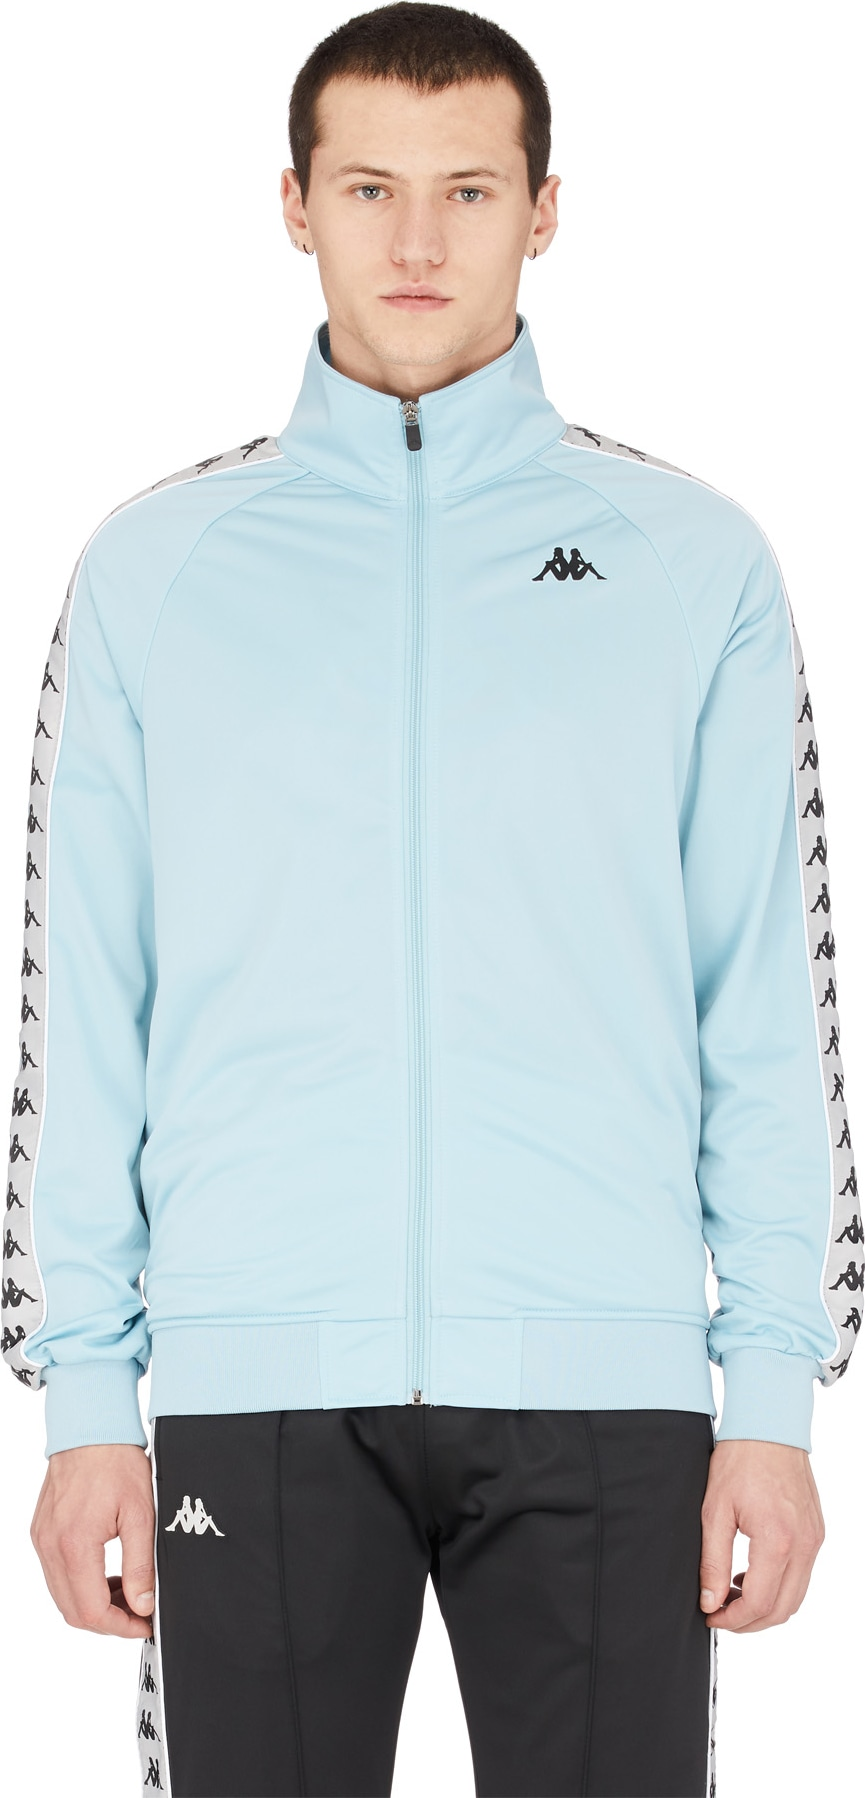 13f941db90 Kappa - 222 Banda Anniston Track Jacket - Azure/Grey Silver/Black